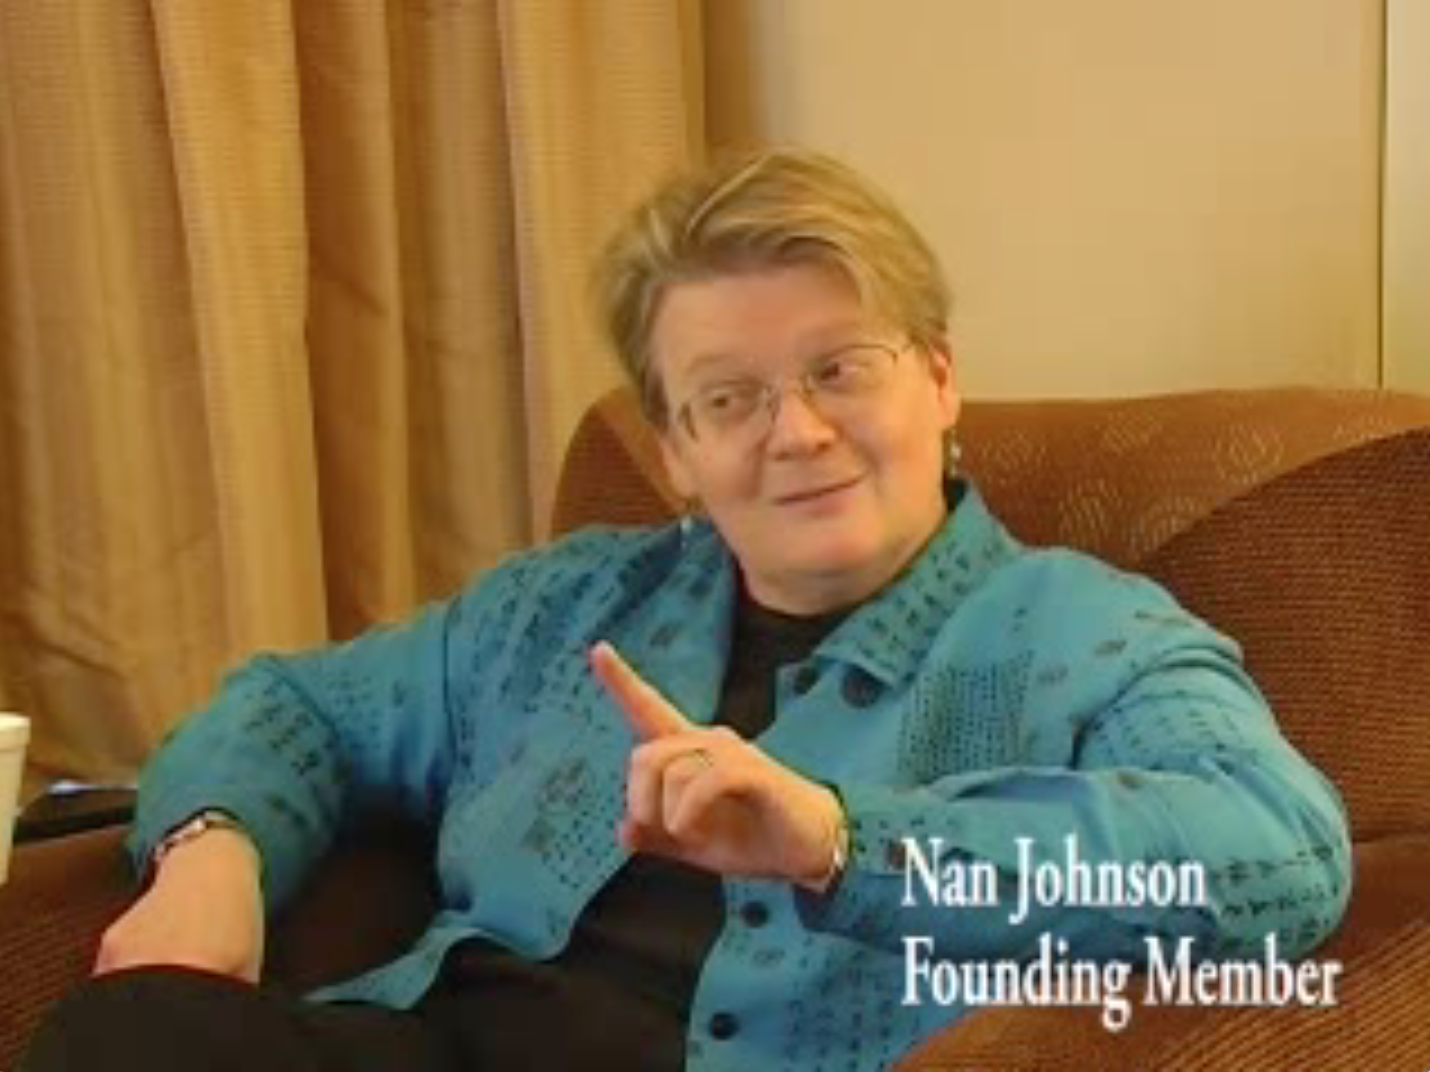 Image shows Nan Johnson sitting in a chair wearing a blue sweater. She is holding up her index finger in a gesture that suggests she is delivering an important point.